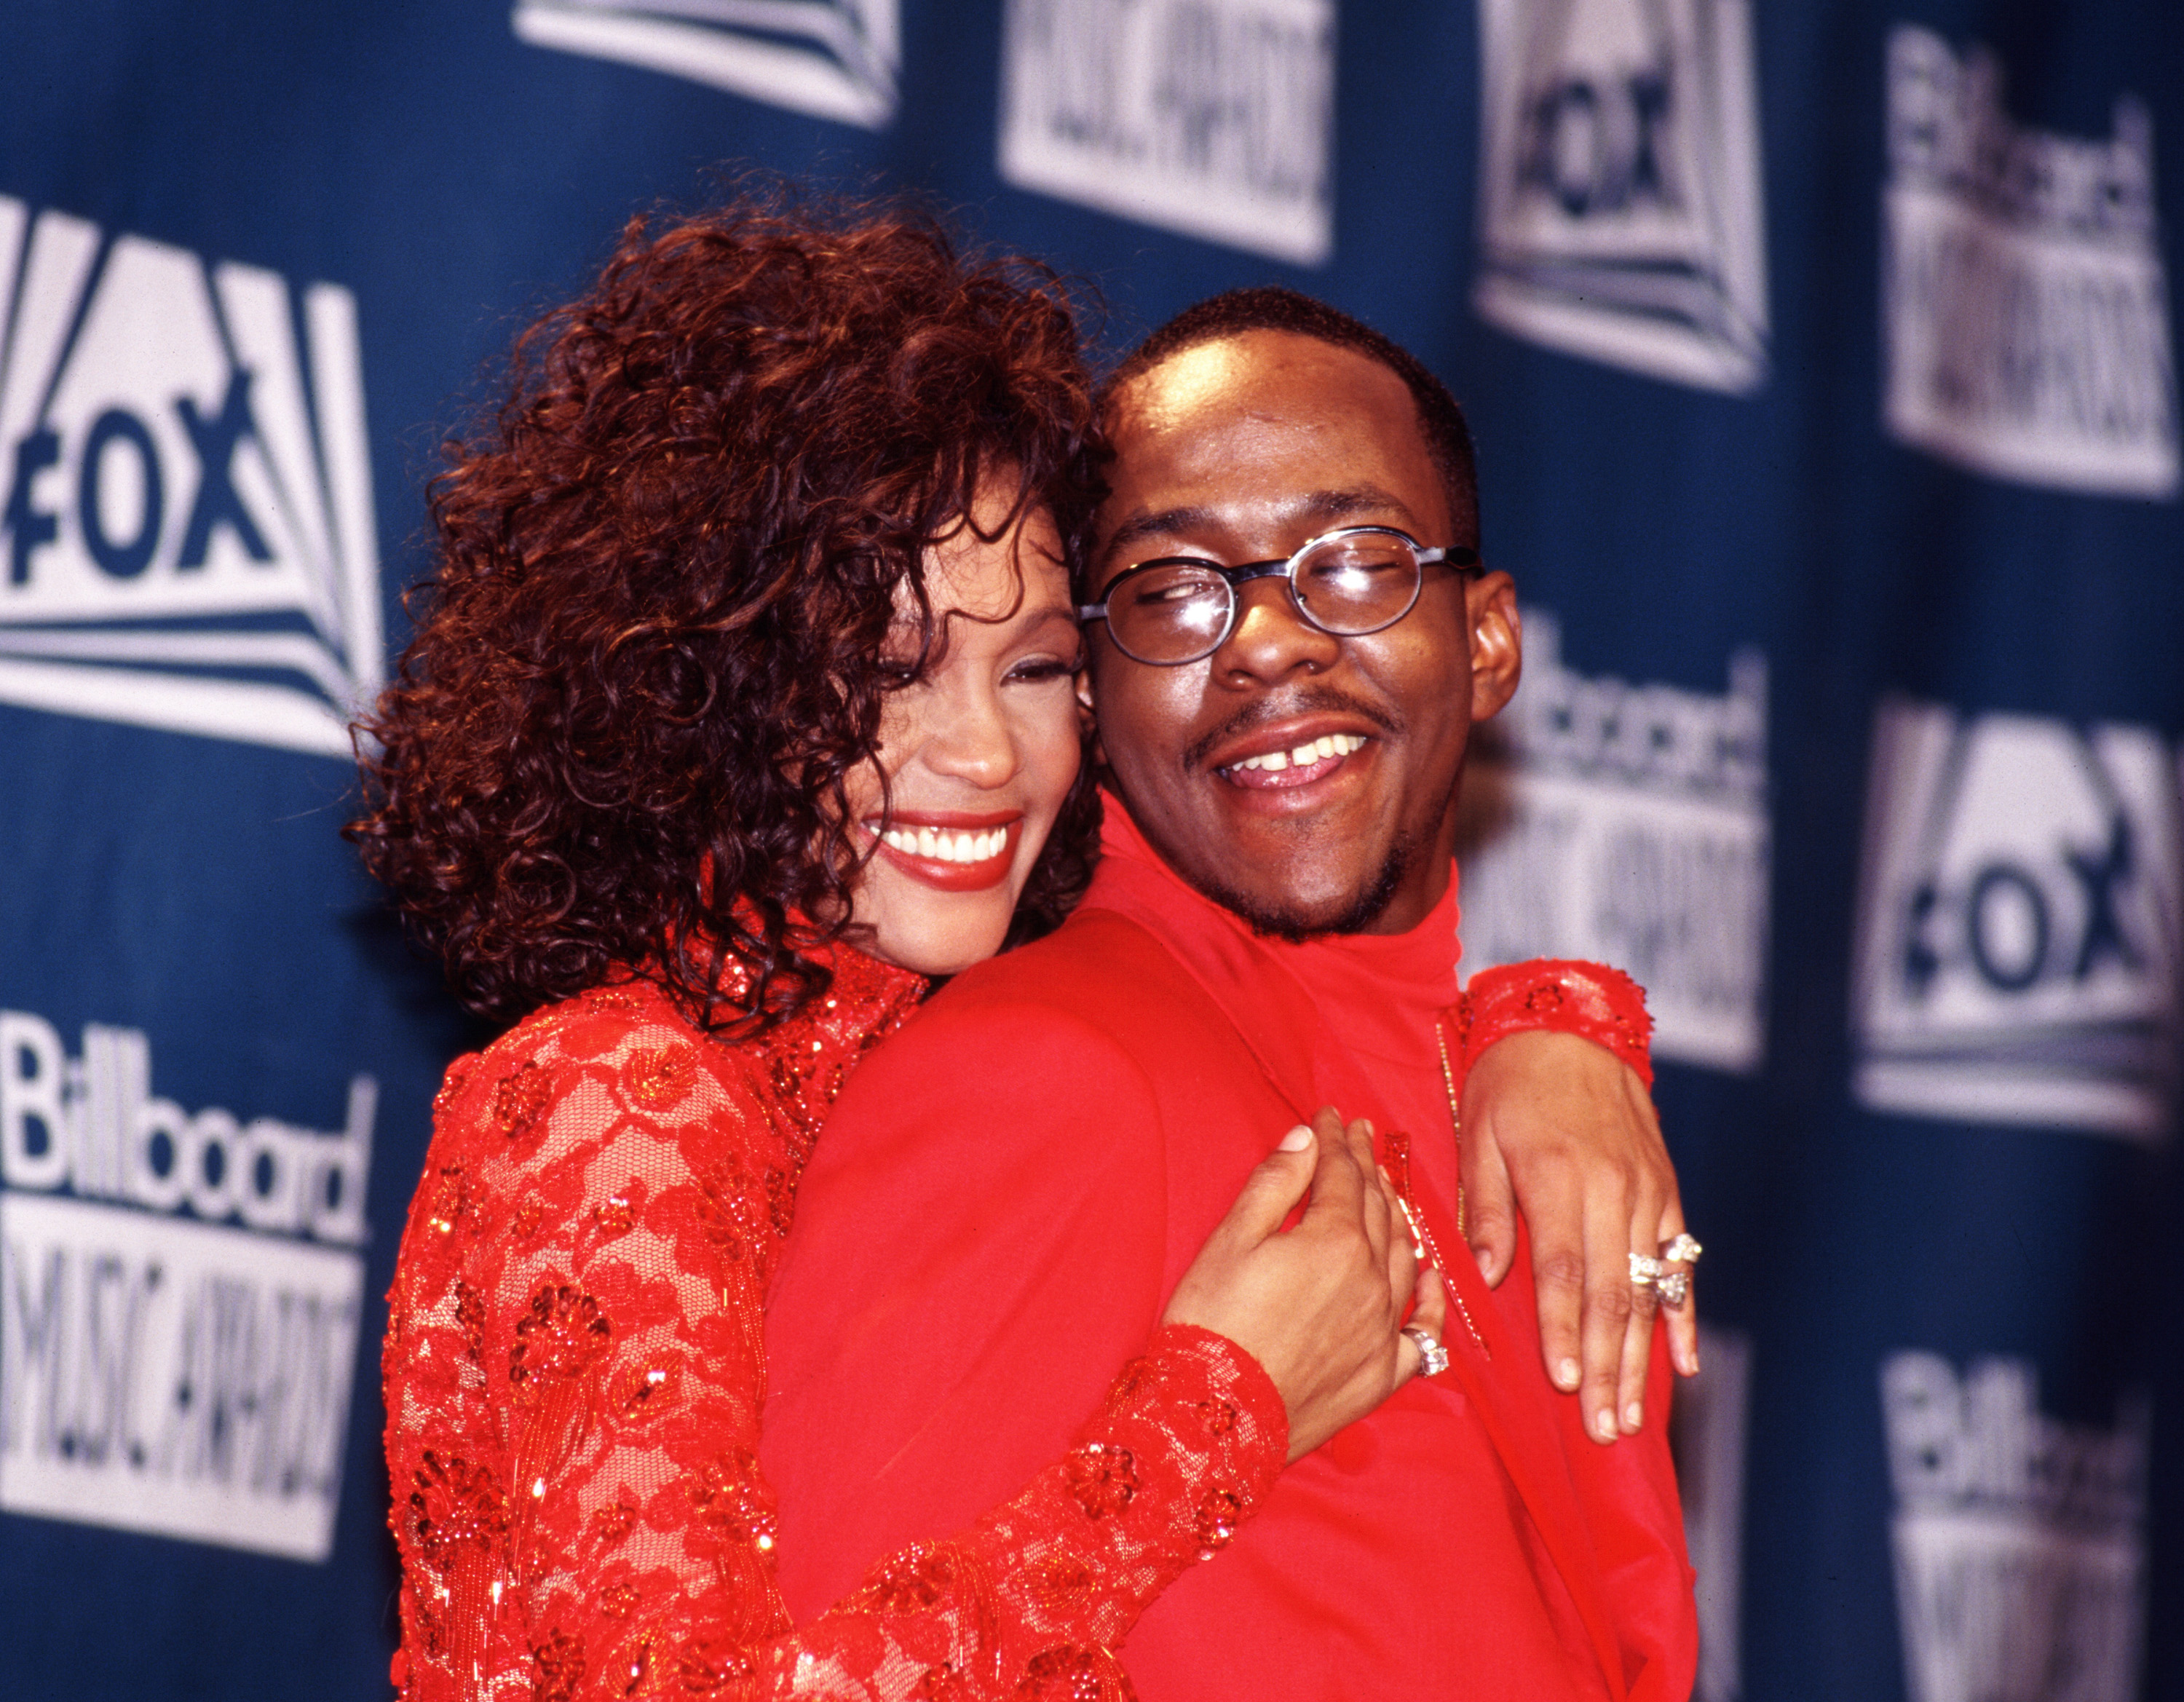 Whitney houston and bobby brown beat tom cruise to be tackiest couple - 2019 year